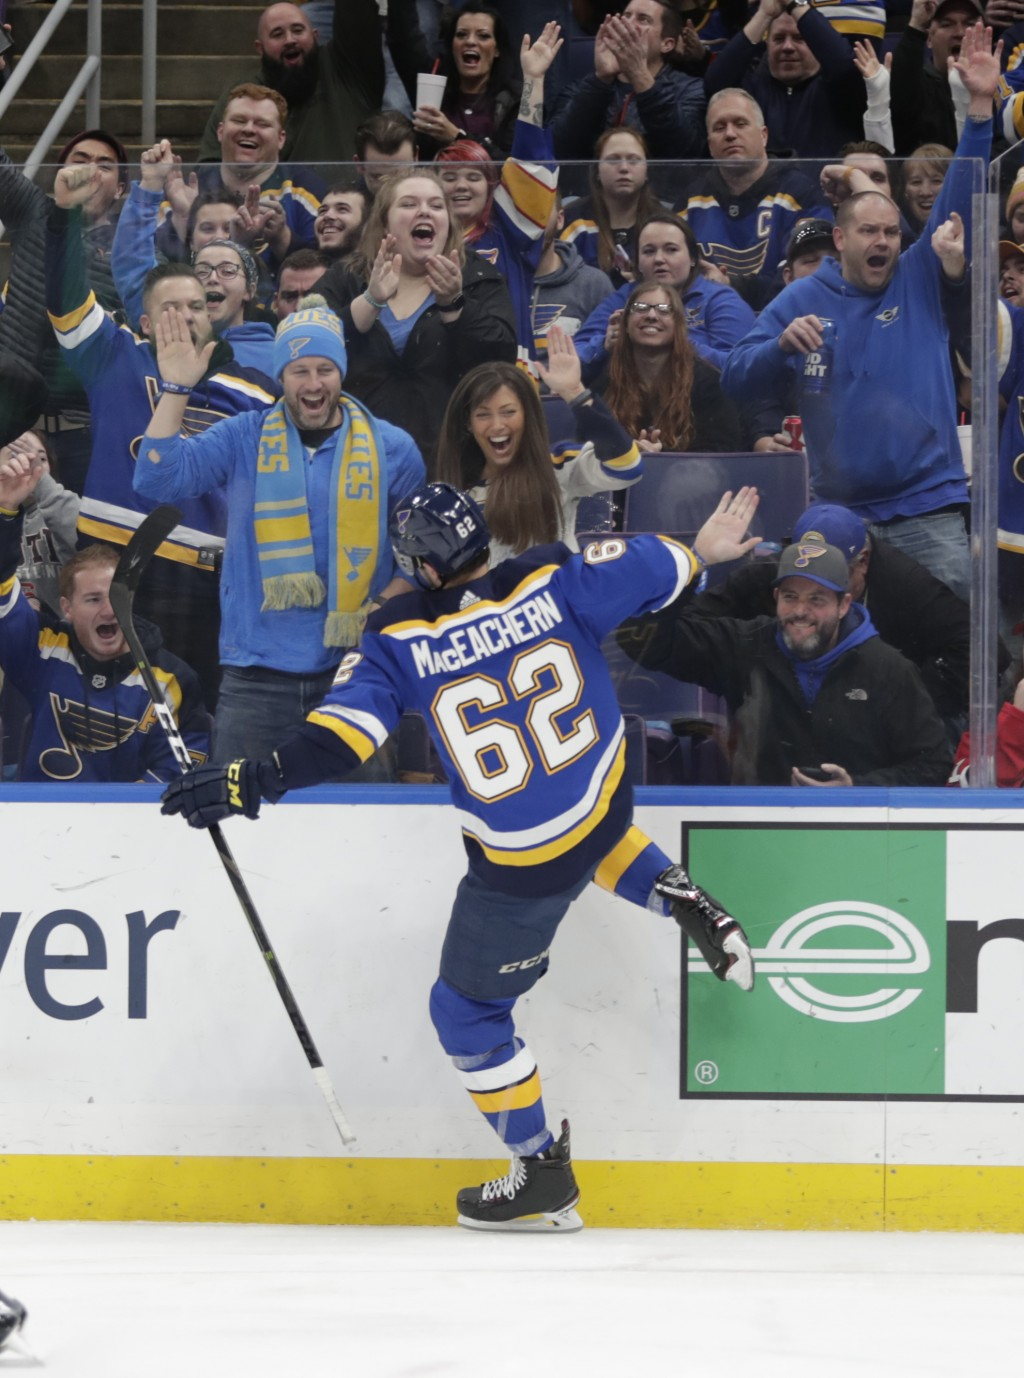 St. Louis Blues' Mackenzie MacEachern (62) celebrates scoring a goal in the second period of an NHL hockey game against the New Jersey Devils, Tuesday